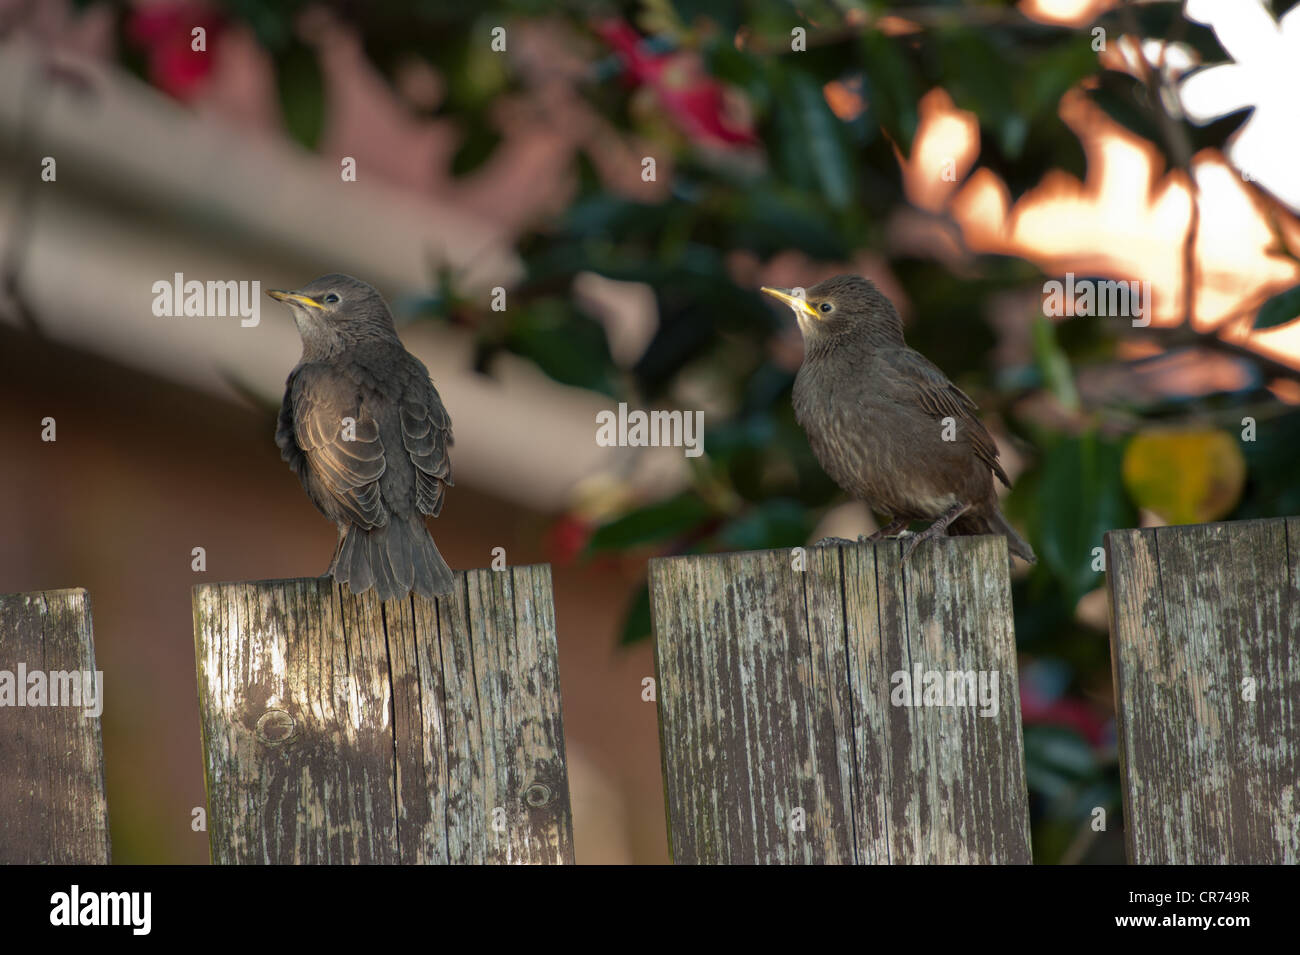 Two Starling Fledglings on fence post - Stock Image